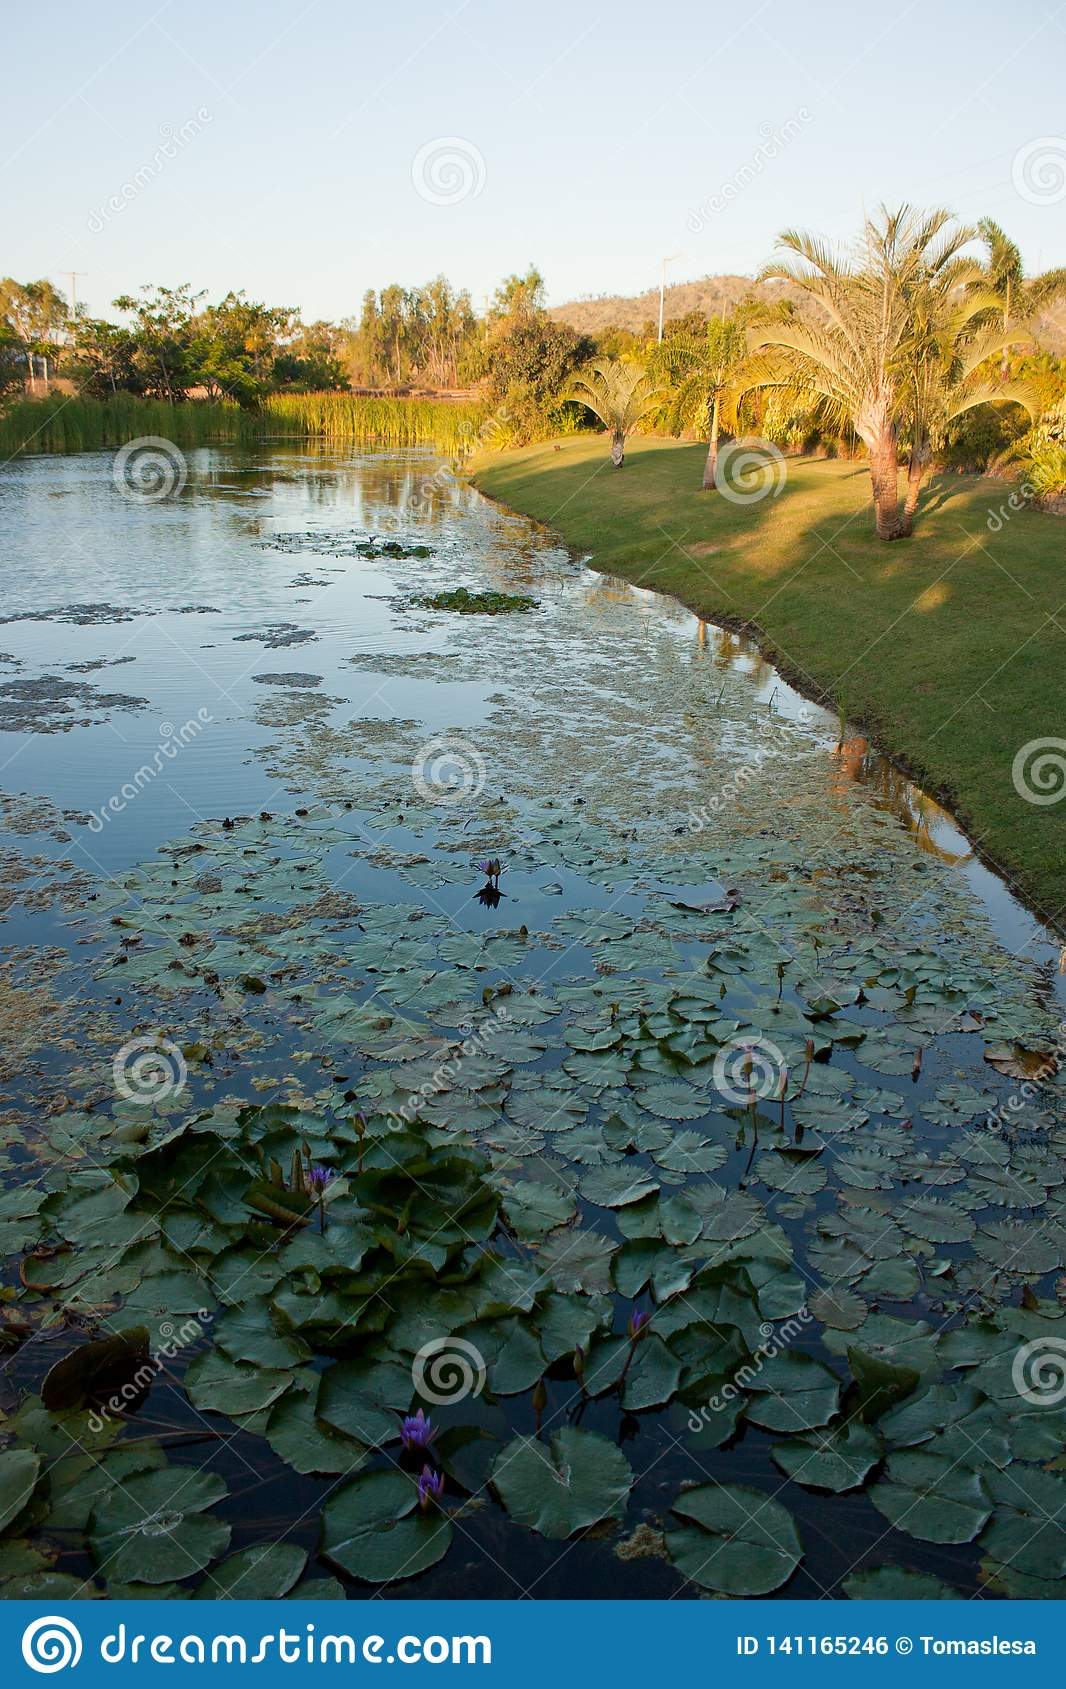 A pond with palm trees on the shore and water lilies in the water in tropical Queensland